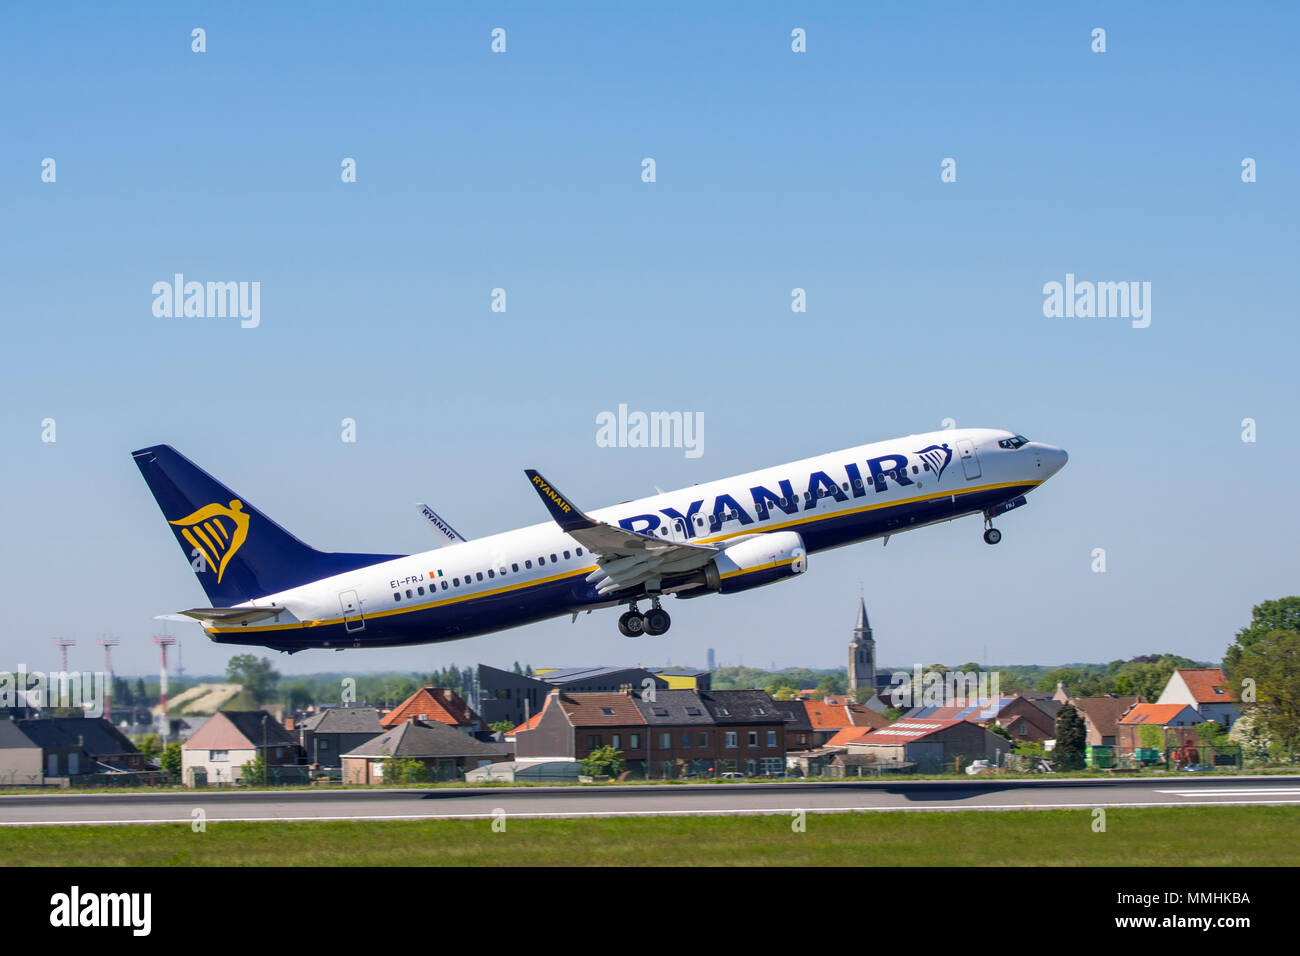 Boeing 737-8AS, short- to medium-range twinjet narrow-body airliner from Ryanair DAC, Irish low-cost airline taking off from runway - Stock Image